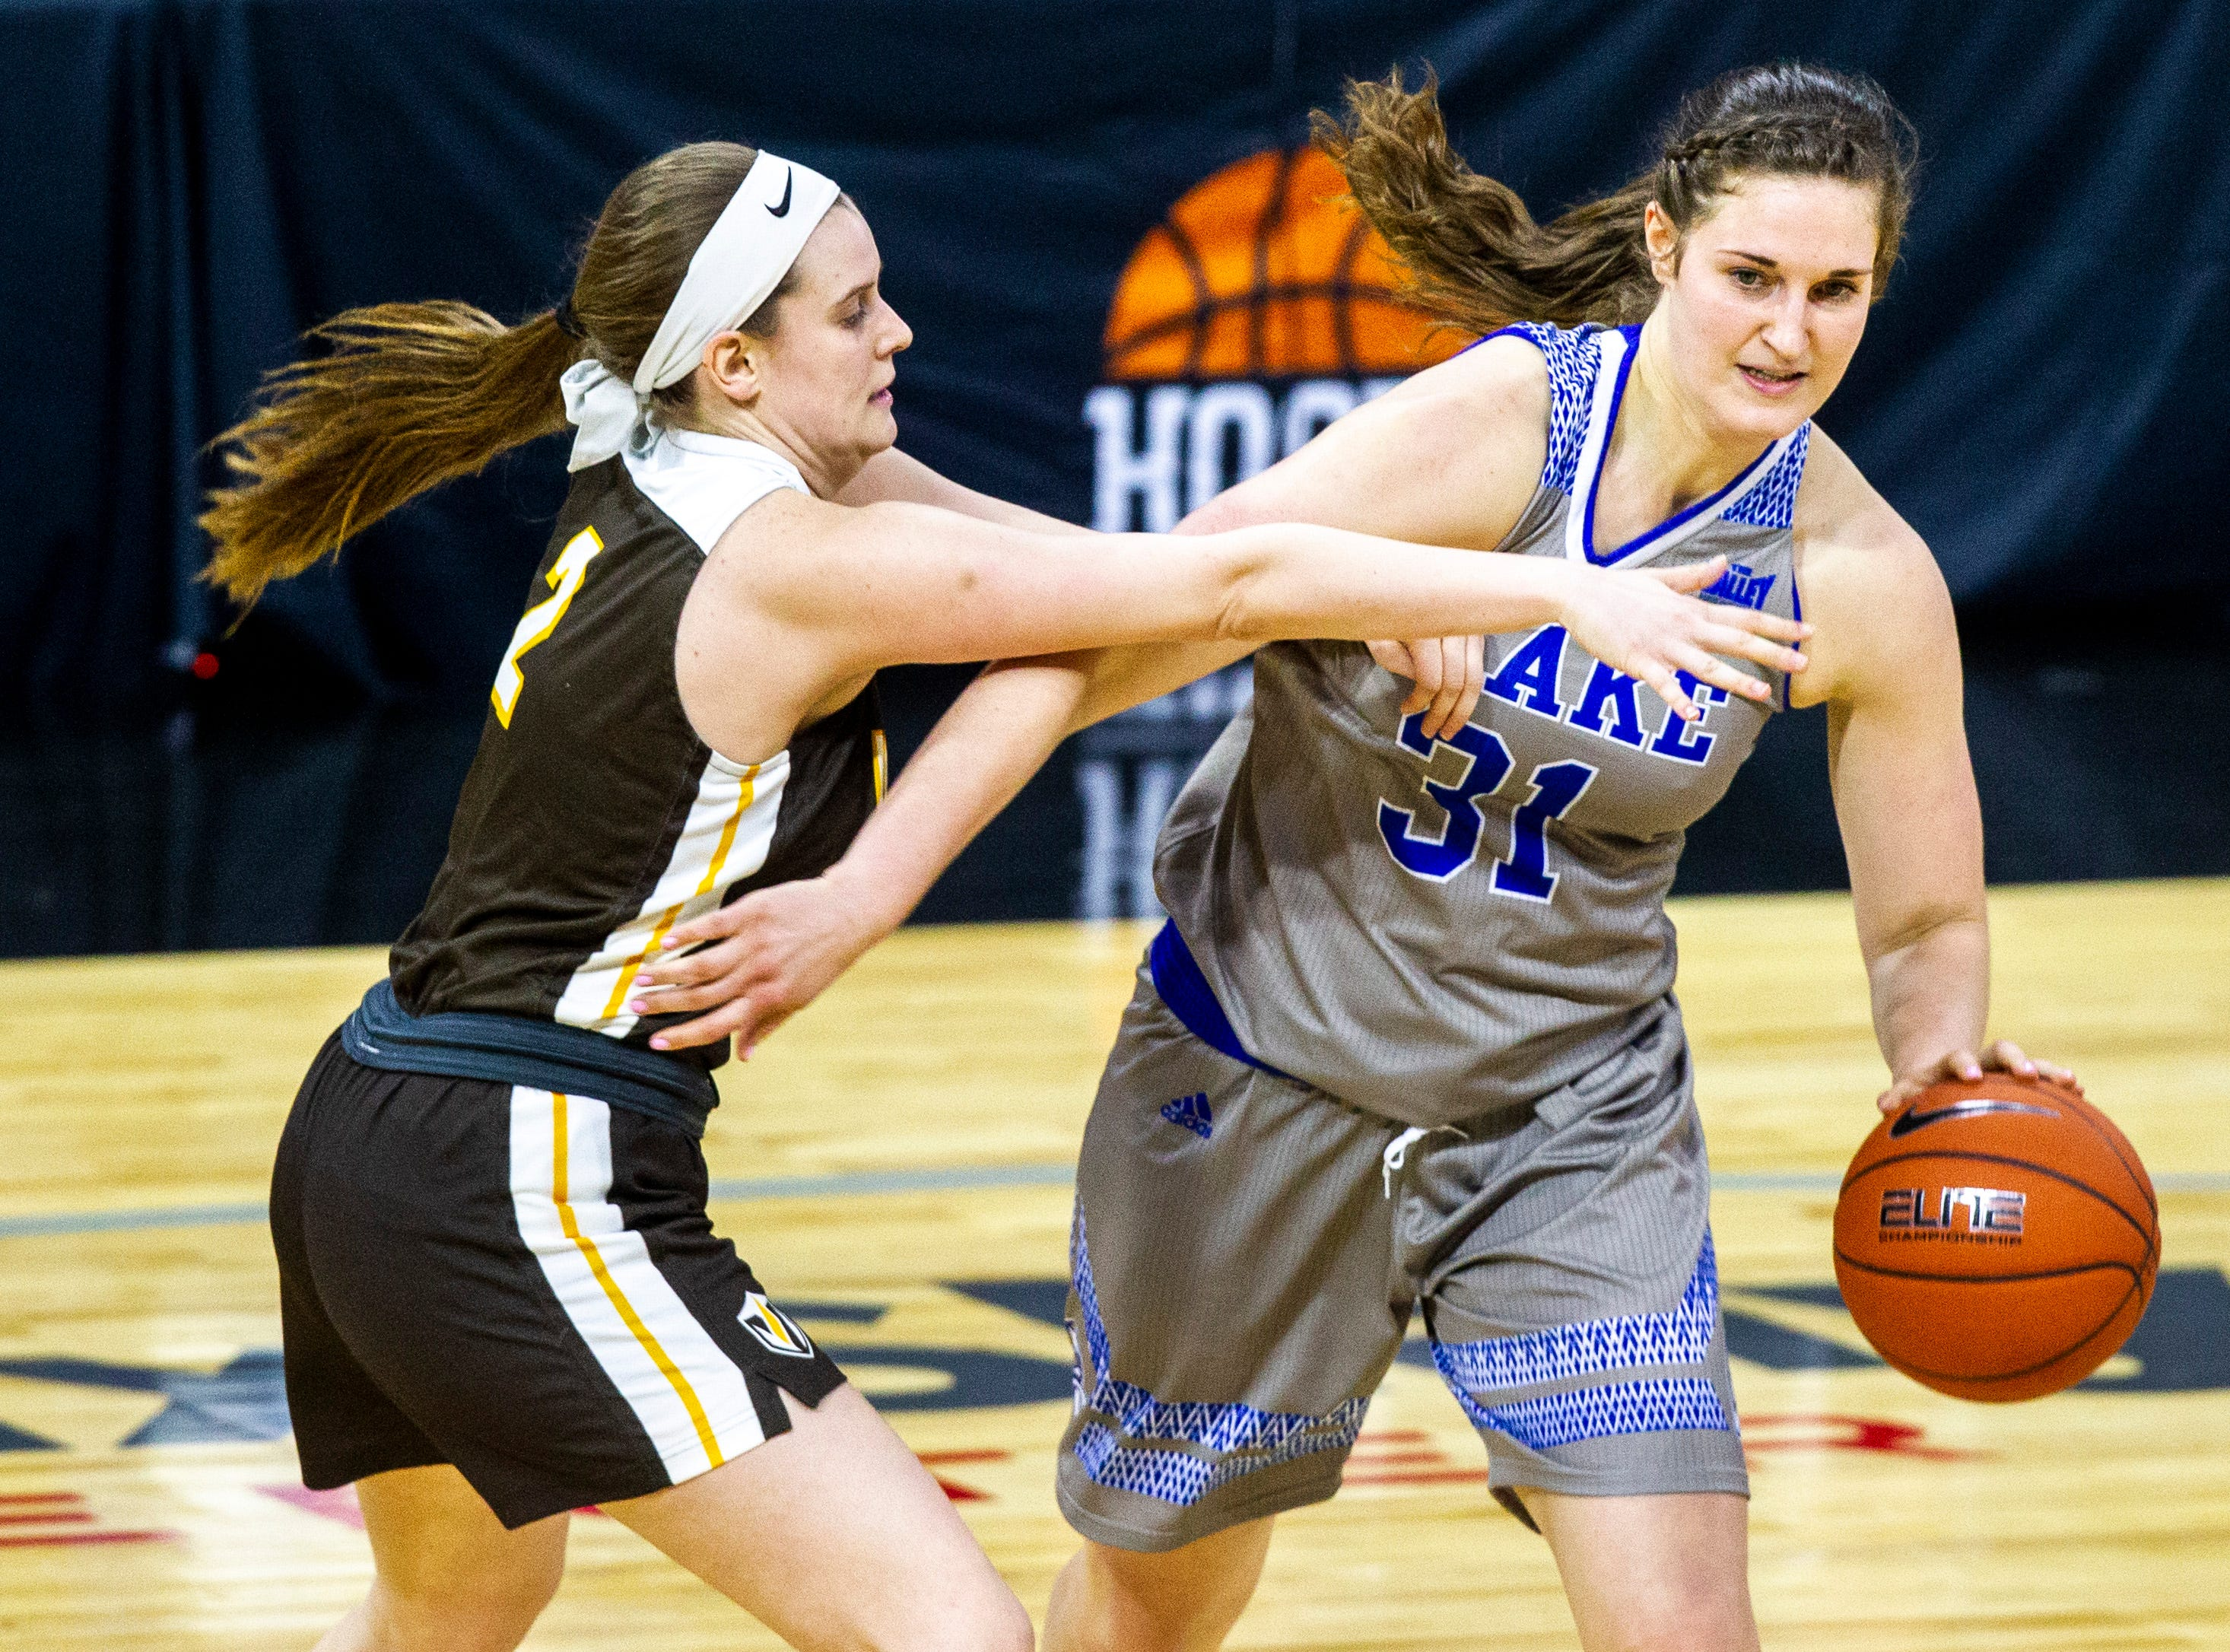 Drake forward Monica Burich (31) dribbles while Valparaiso guard Meredith Hamlet (2) defends during a NCAA Missouri Valley Conference women's basketball quarterfinal tournament game, Friday, March 15, 2019, at the TaxSlayer Center in Moline, Illinois.